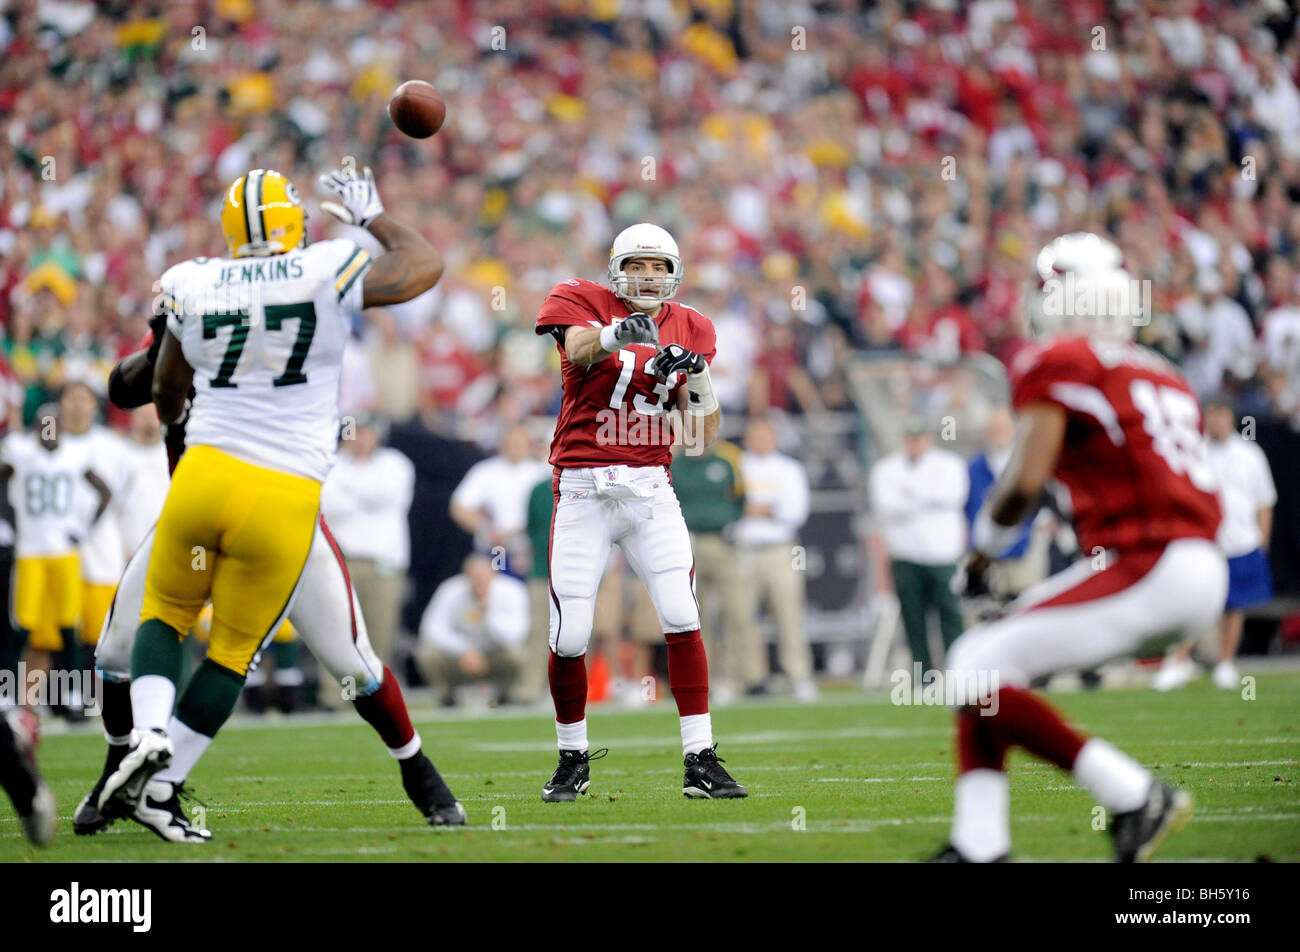 Kurt Warner #13 of the Arizona Cardinals passes against the Green Bay Packers in the NFC wild-card playoff game - Stock Image